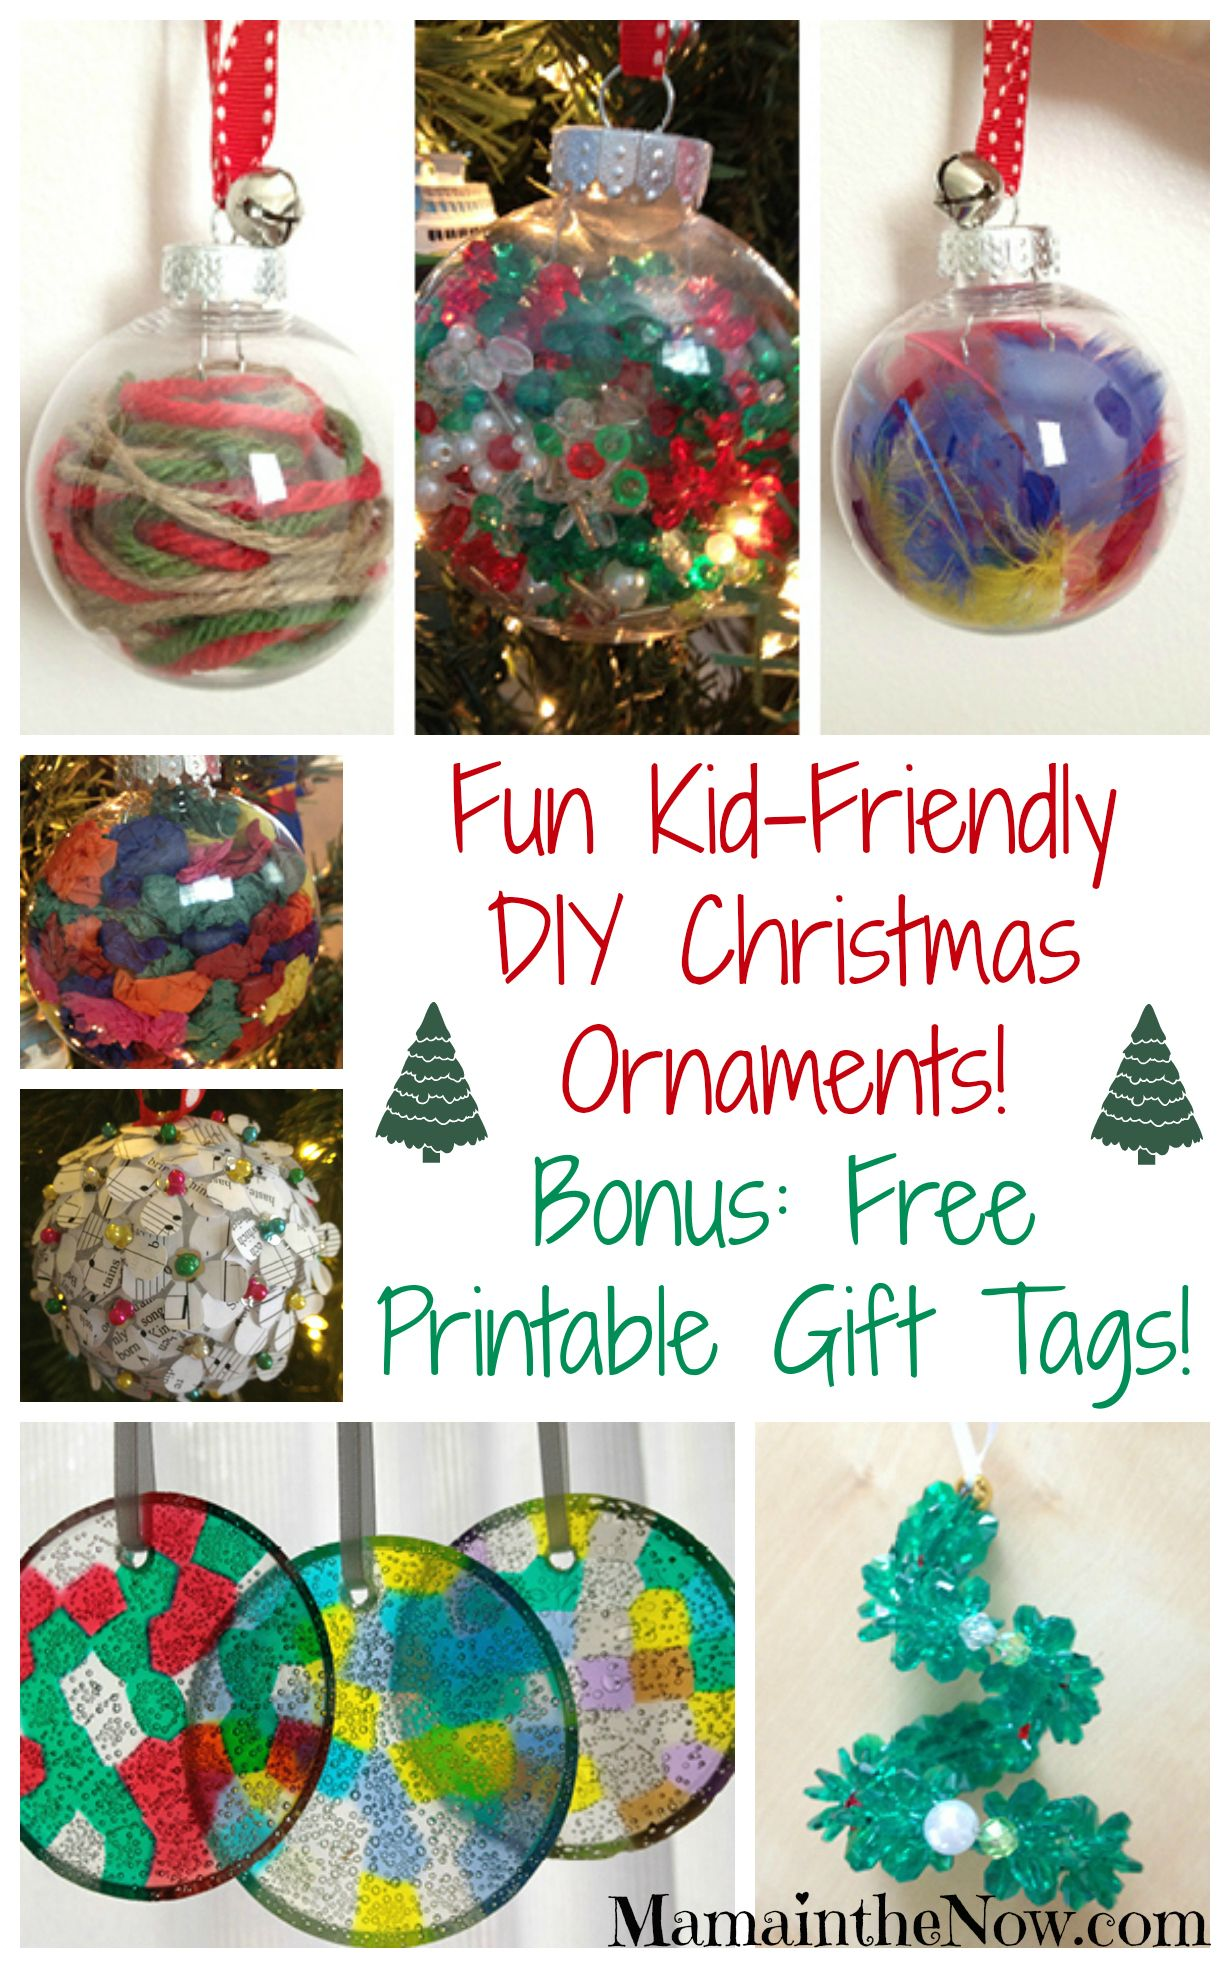 25 Homemade Christmas Ornaments for Kids